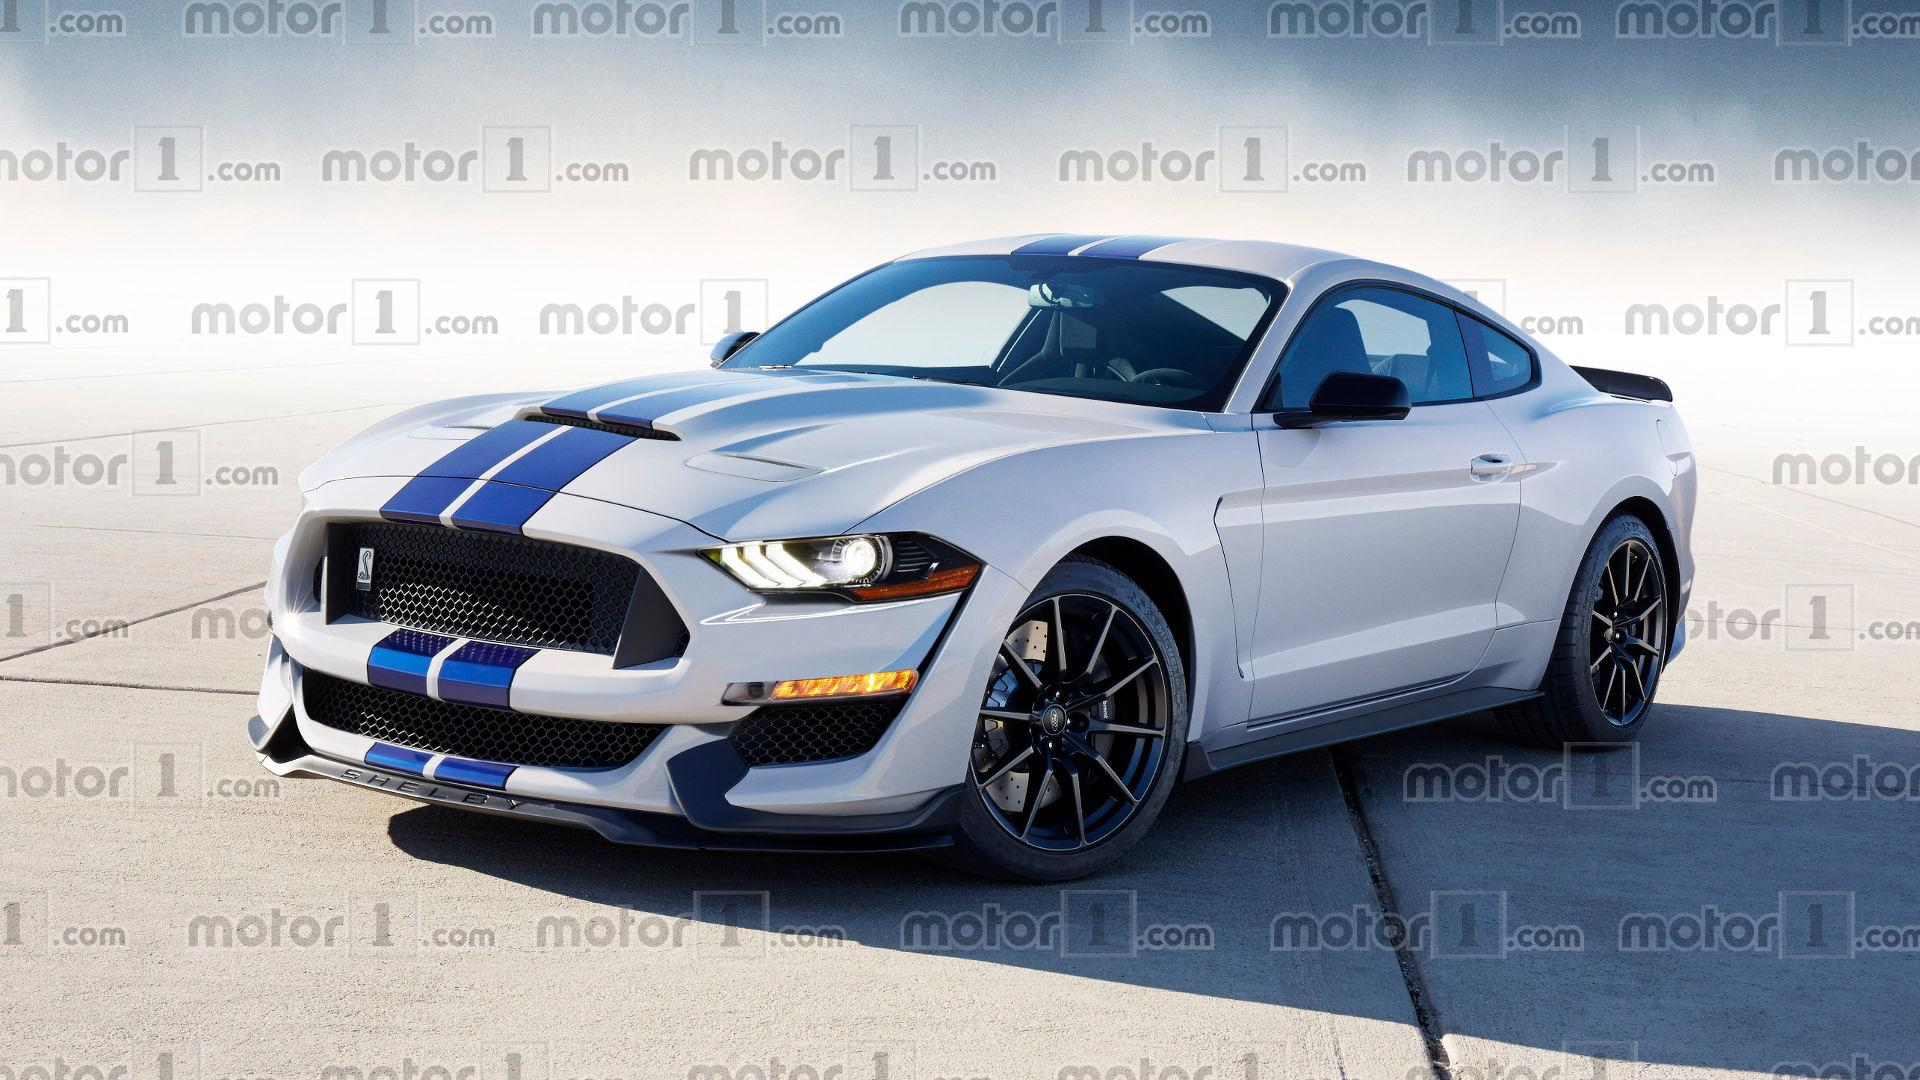 76 Best 2019 Ford Mustang Shelby Gt500 Concept and Review